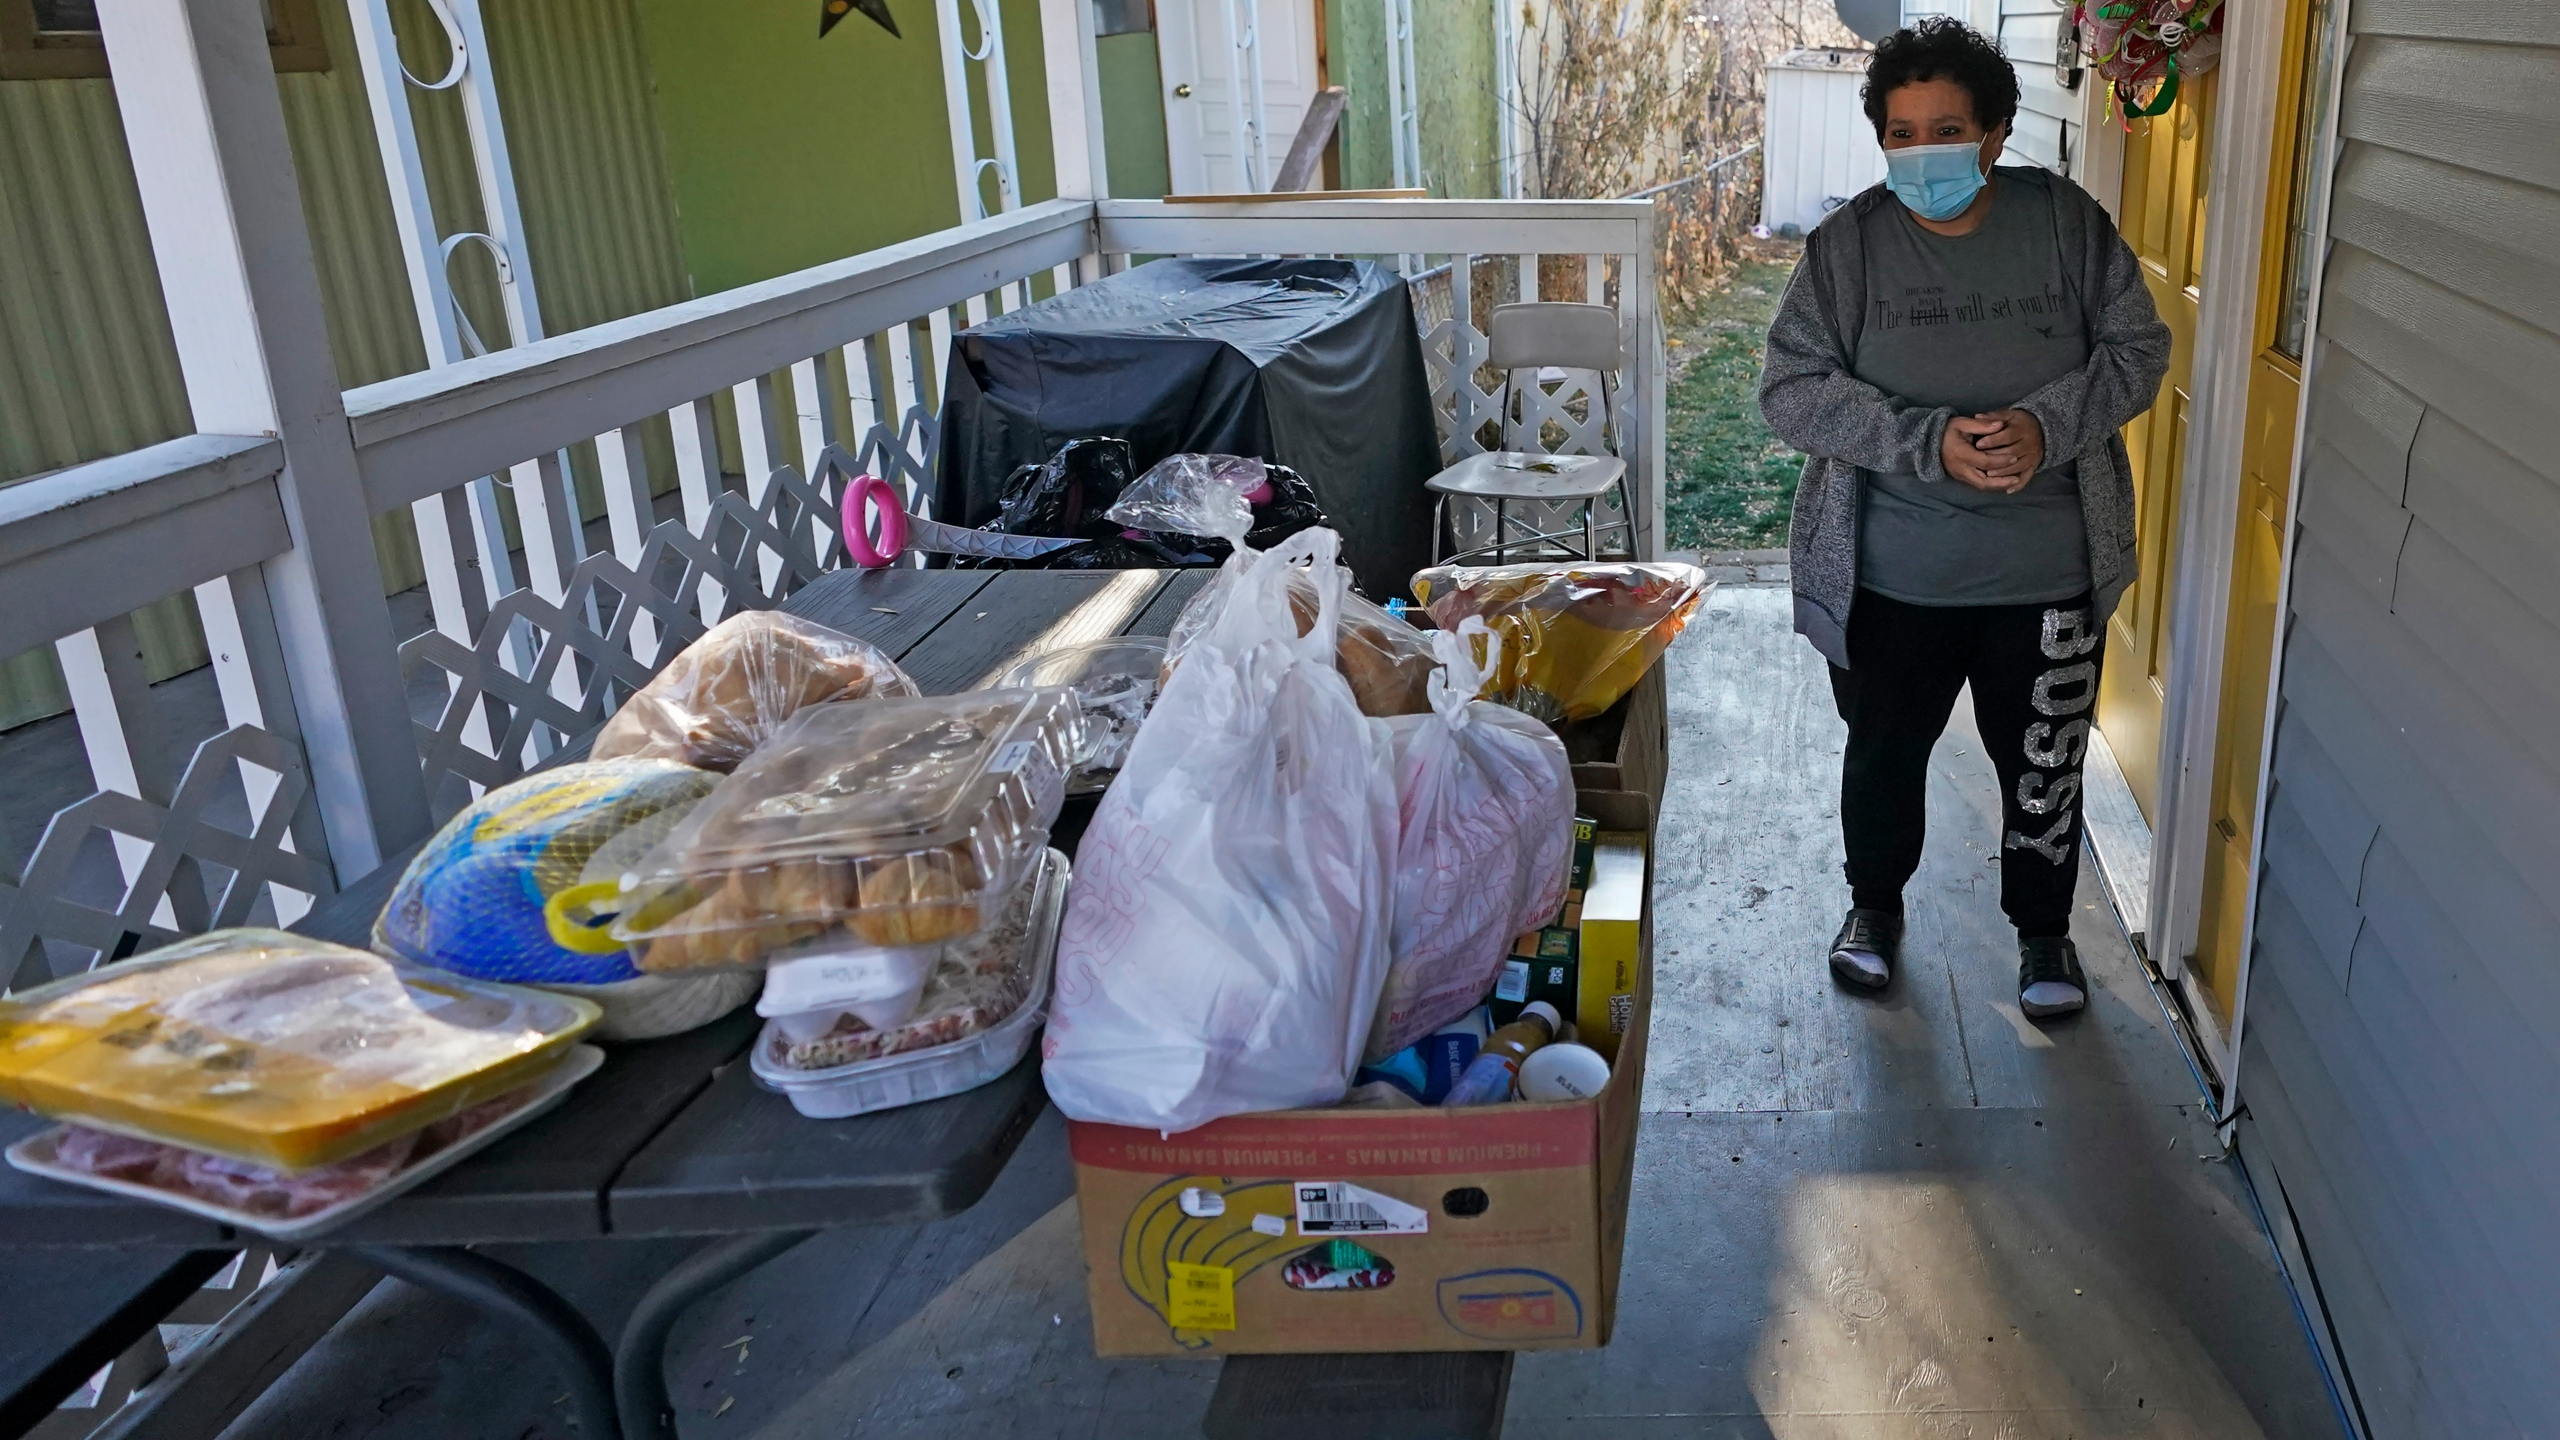 Evelyn Maysonet looks at the food delivery from the Weber-Morgan Health Department Tuesday, Nov. 24, 2020, in Ogden, Utah. Maysonet has been isolating with her husband and son in their Ogden home since all three tested positive for COVID-19 over a week ago. None of them have been able to leave home to buy groceries so Maysonet said they were thrilled to receive the health department's delivery. (AP Photo/Rick Bowmer)